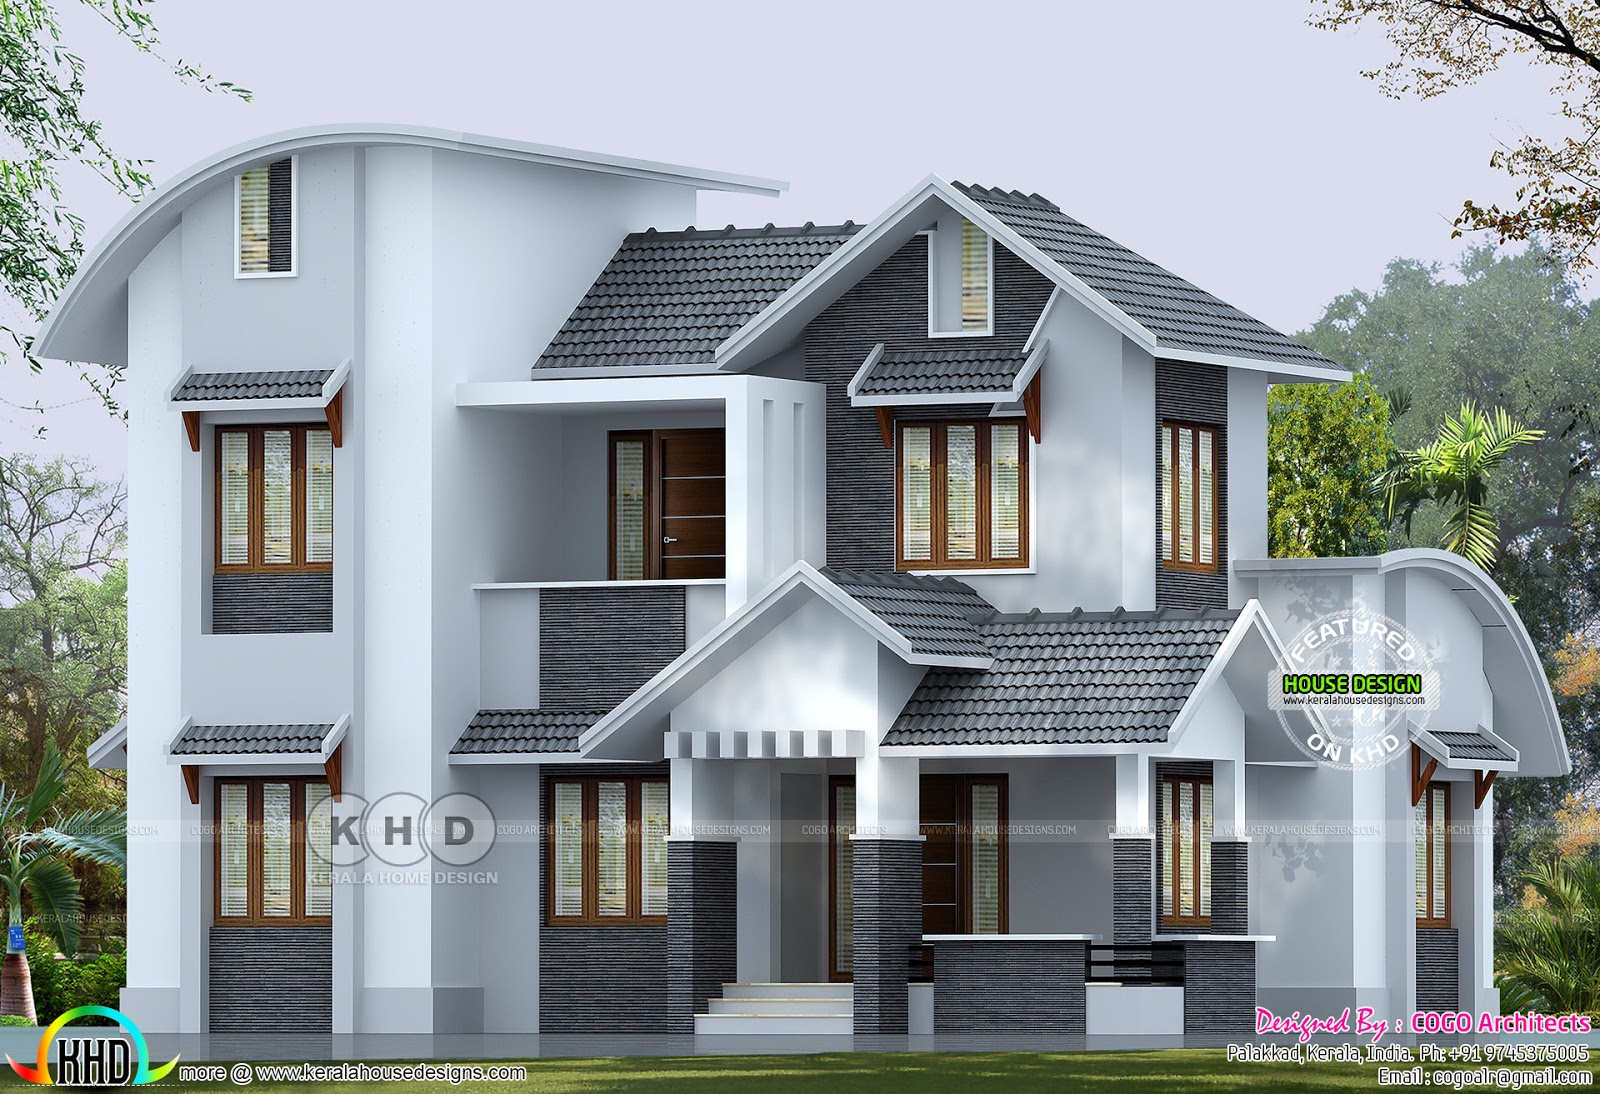 ₹35 lakhs cost estimated modern home - Kerala home design ...